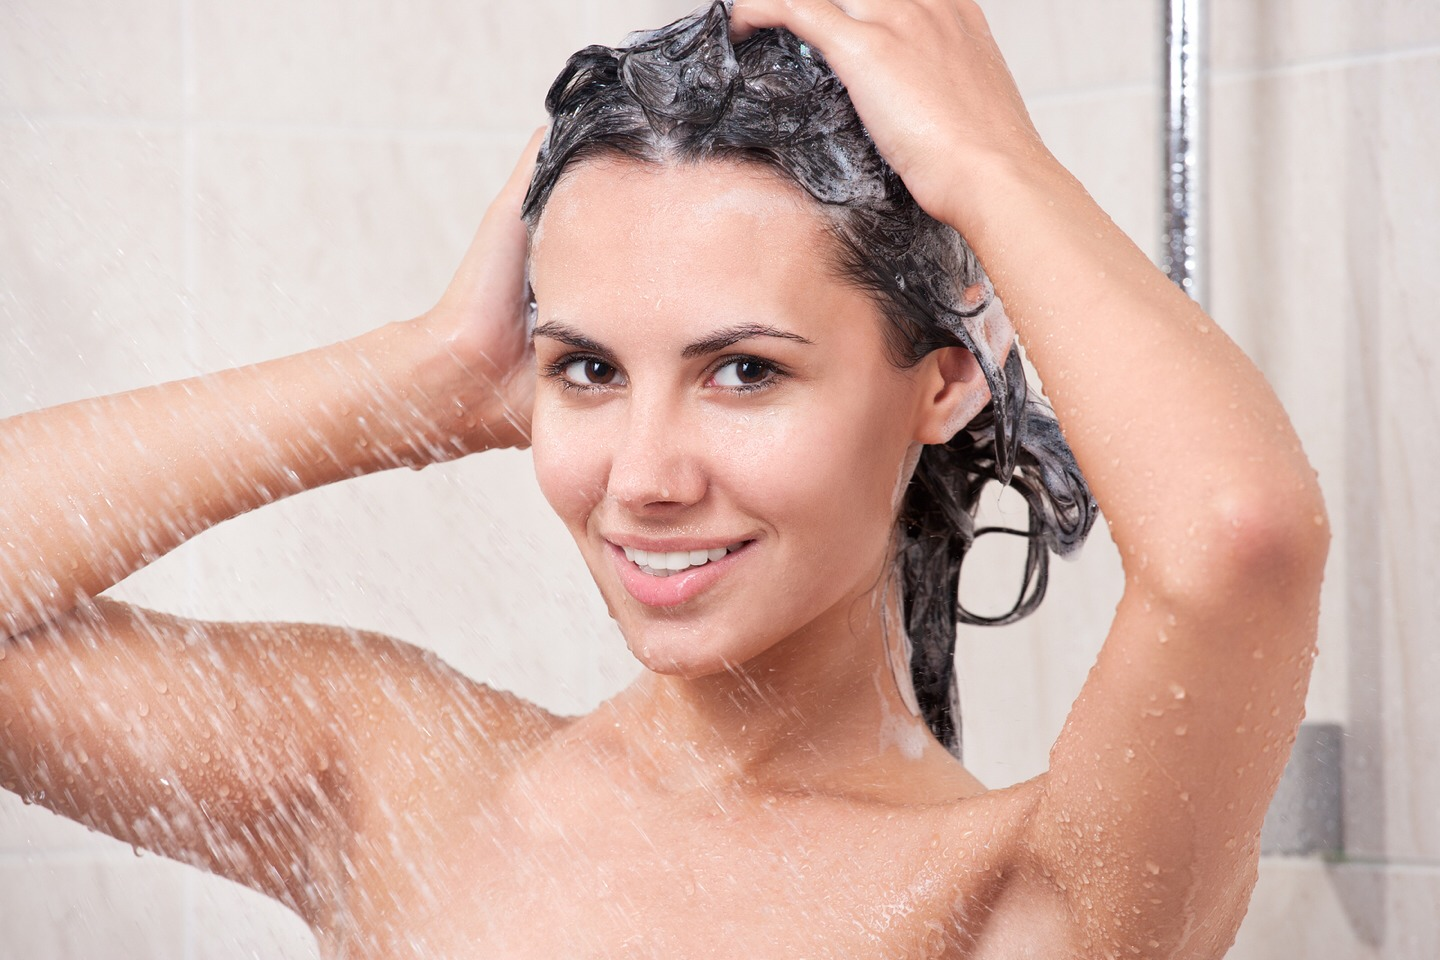 Wash your hair thoroughly getting all the sugar out don't worry it won't wash out